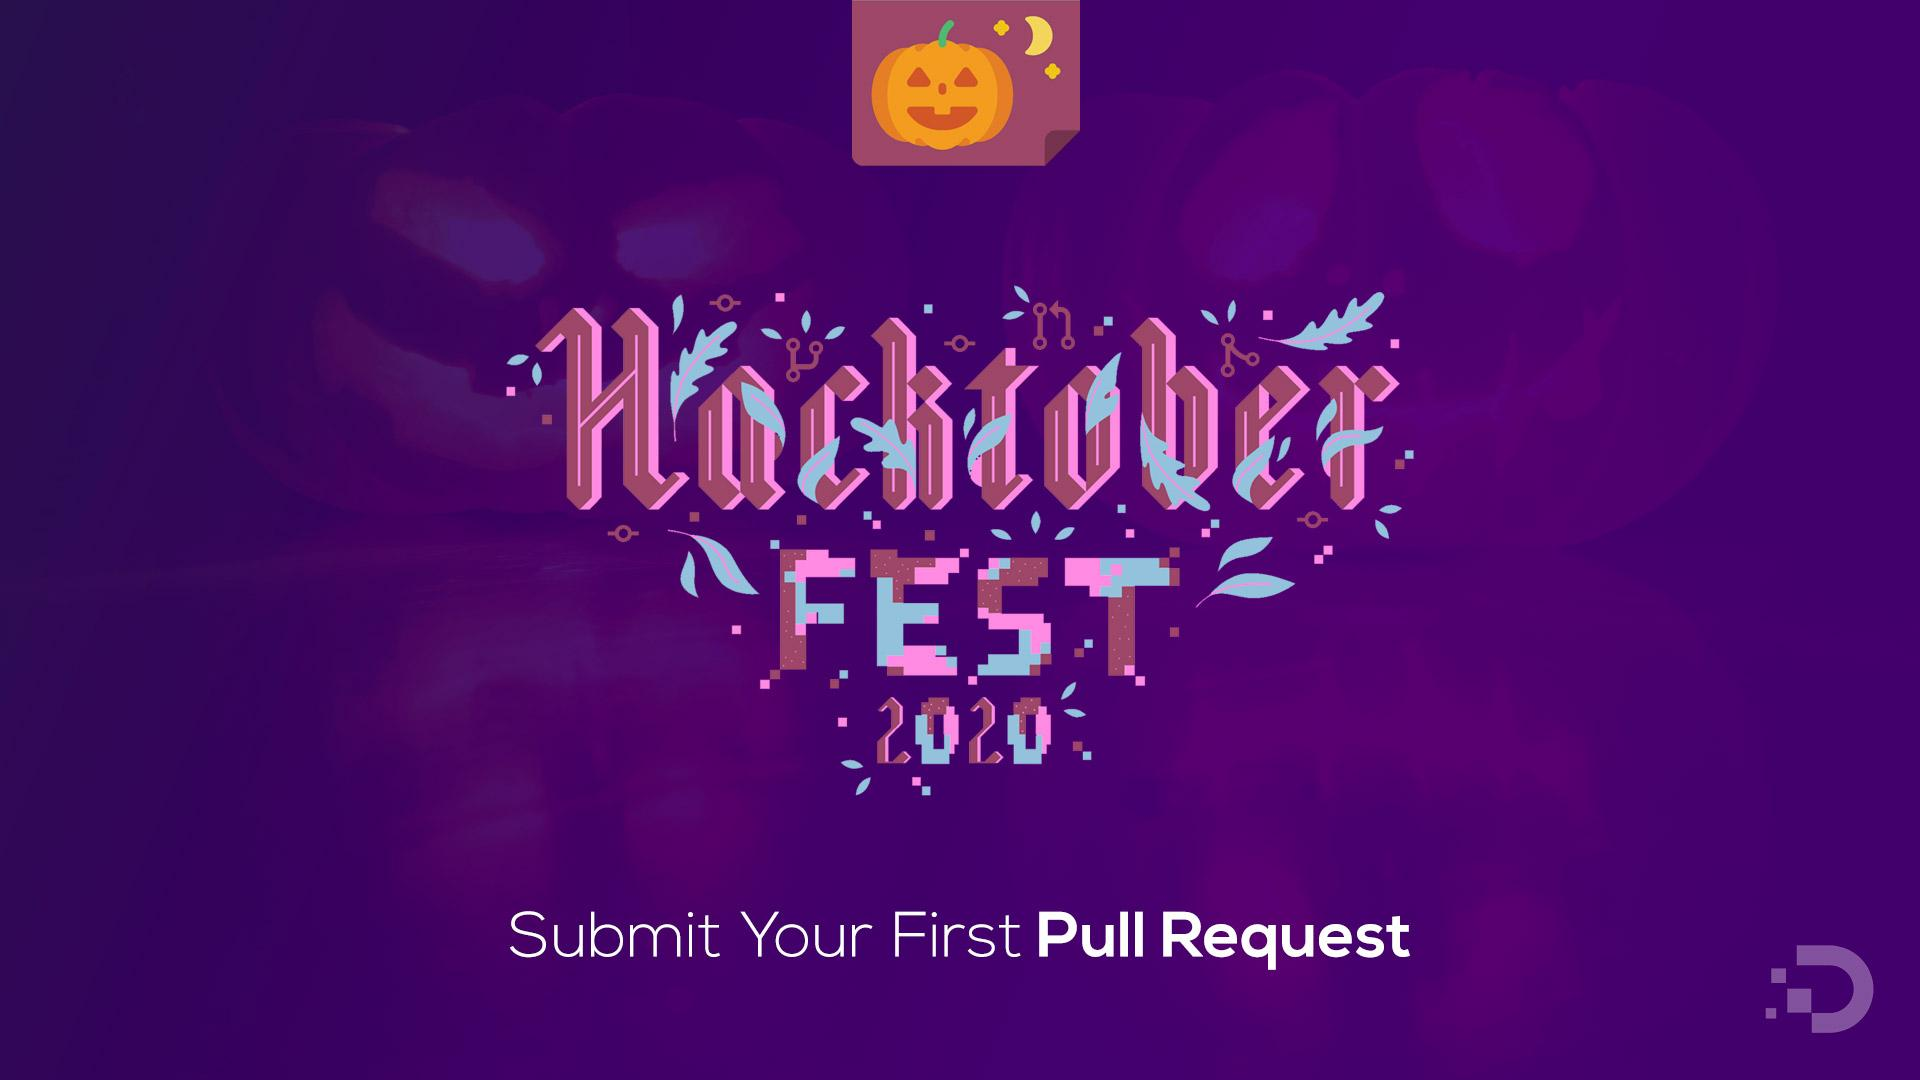 Hacktoberfest 2020 - Submitting your first pull request